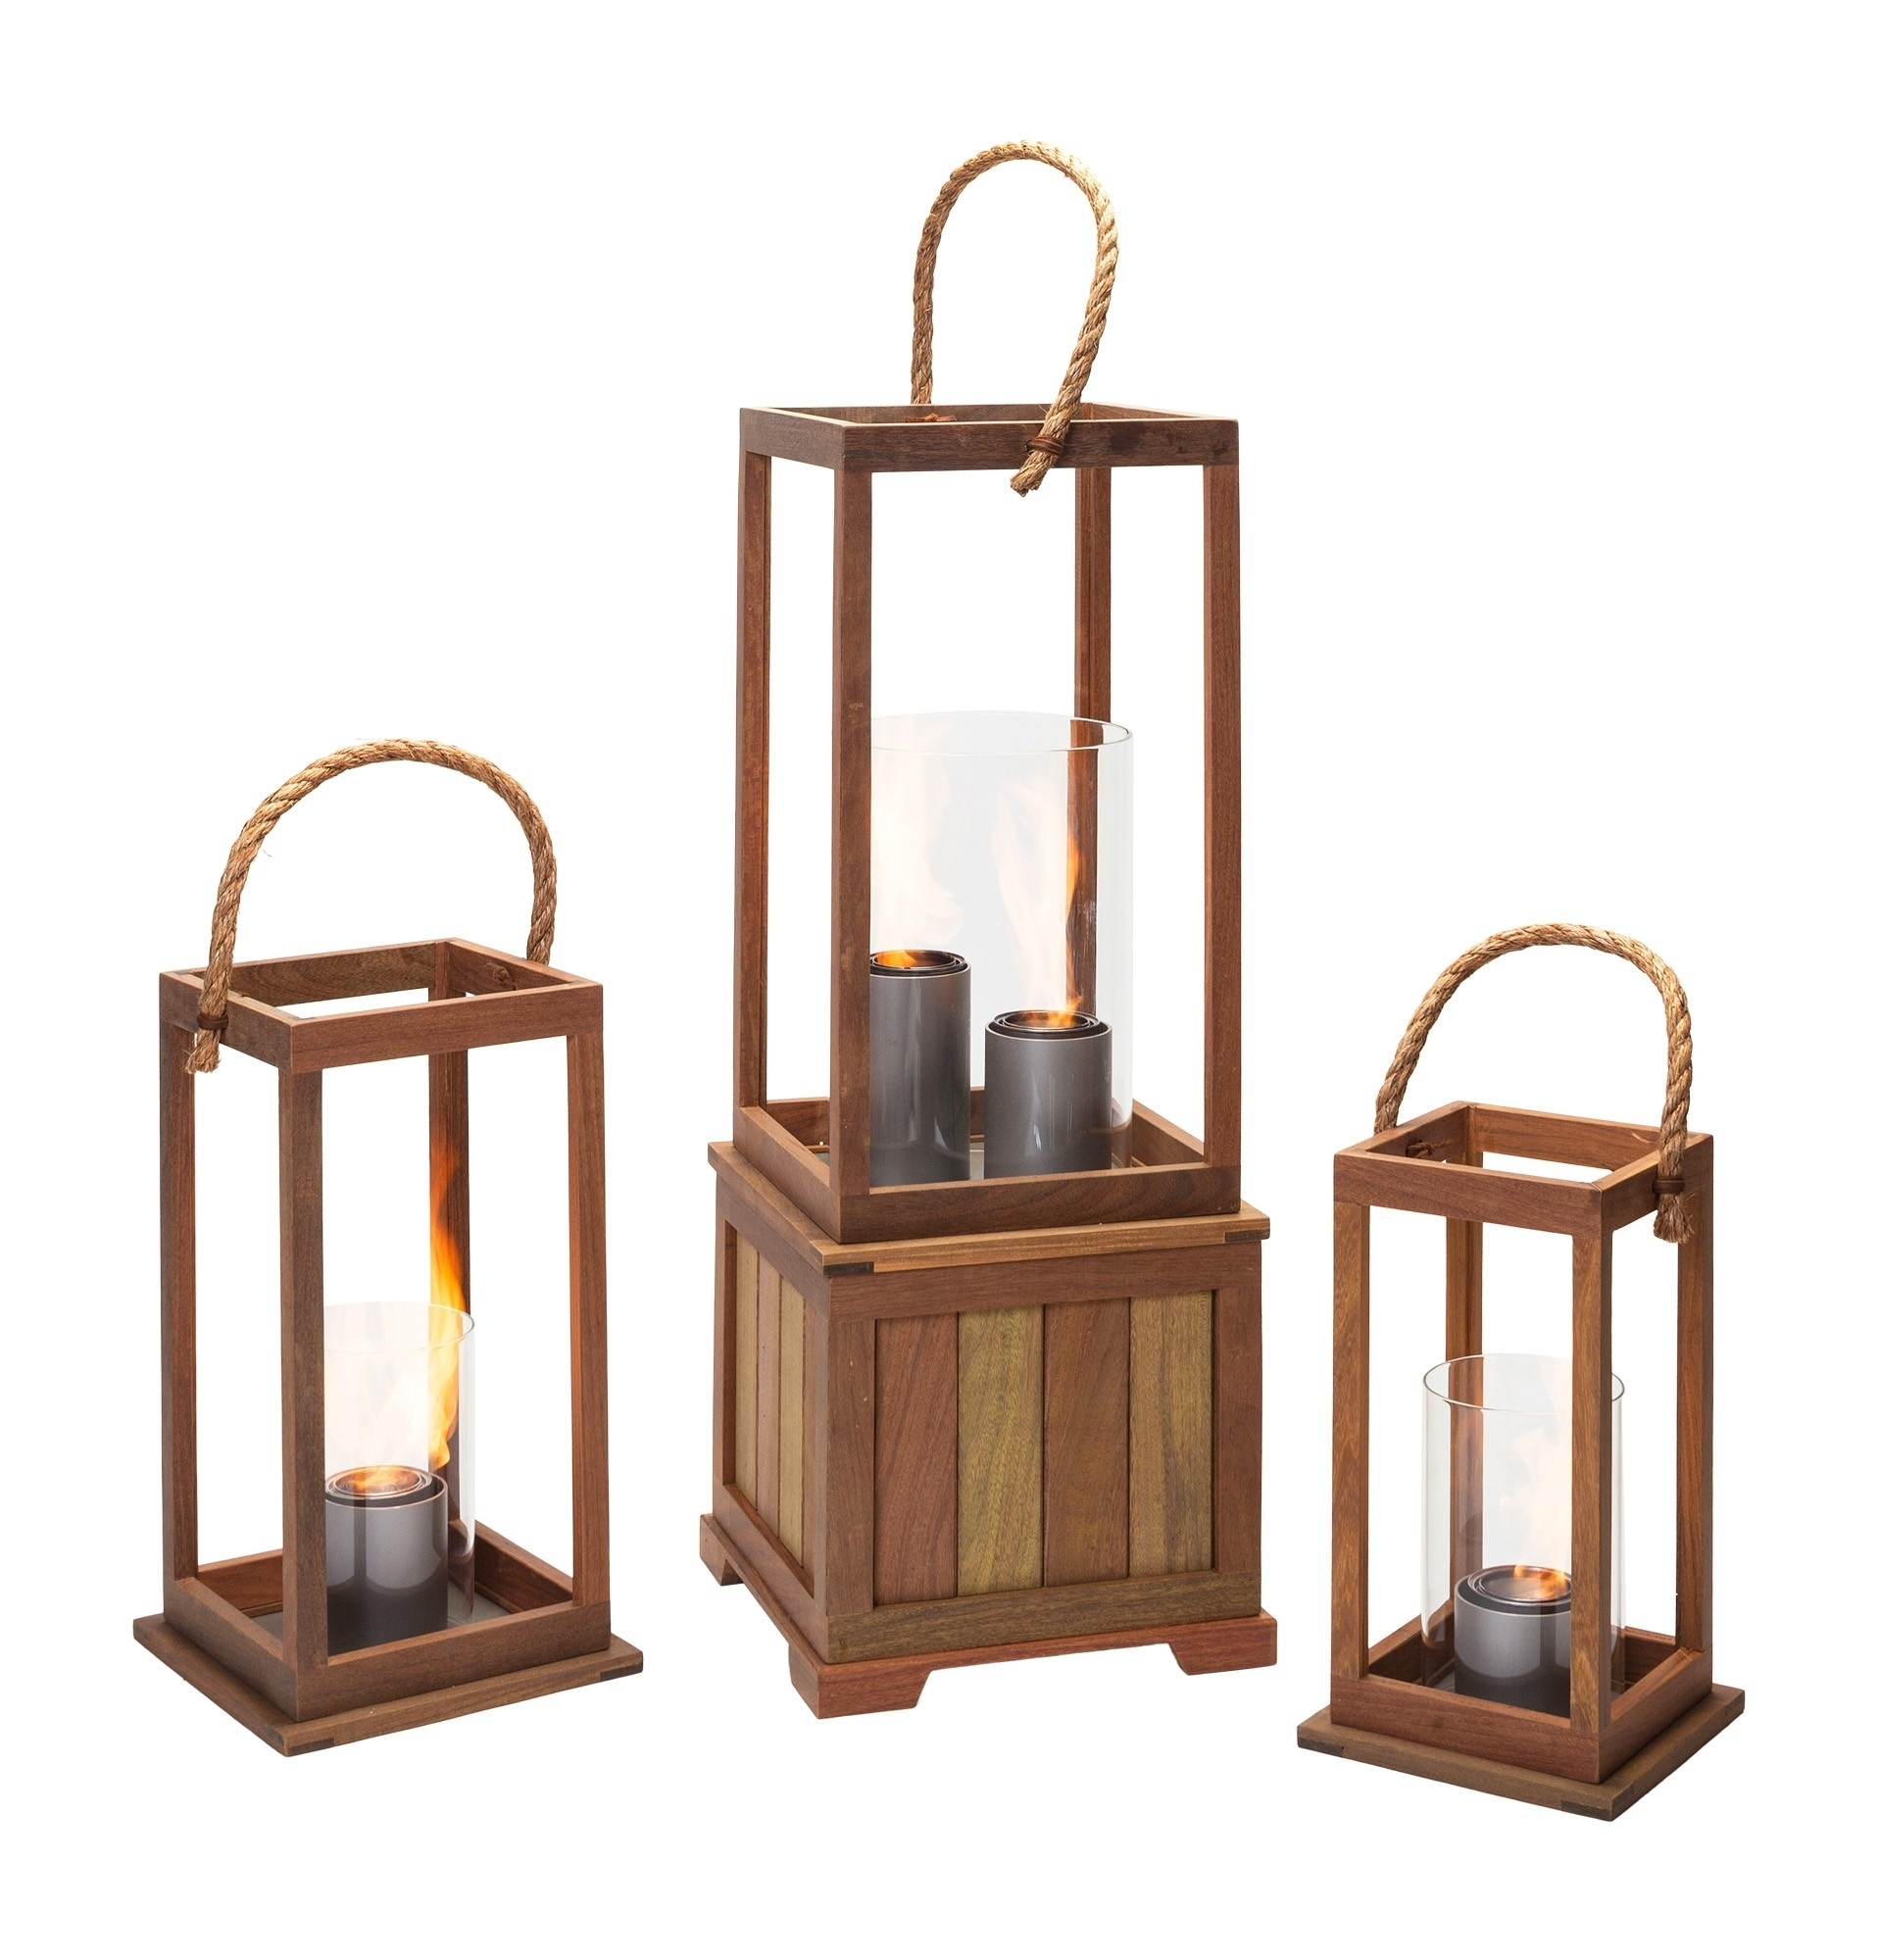 Sonoma 17 Inch Outdoor Lantern In Ipe Woodnorthcape Fire intended for Outdoor Gel Lanterns (Image 13 of 20)